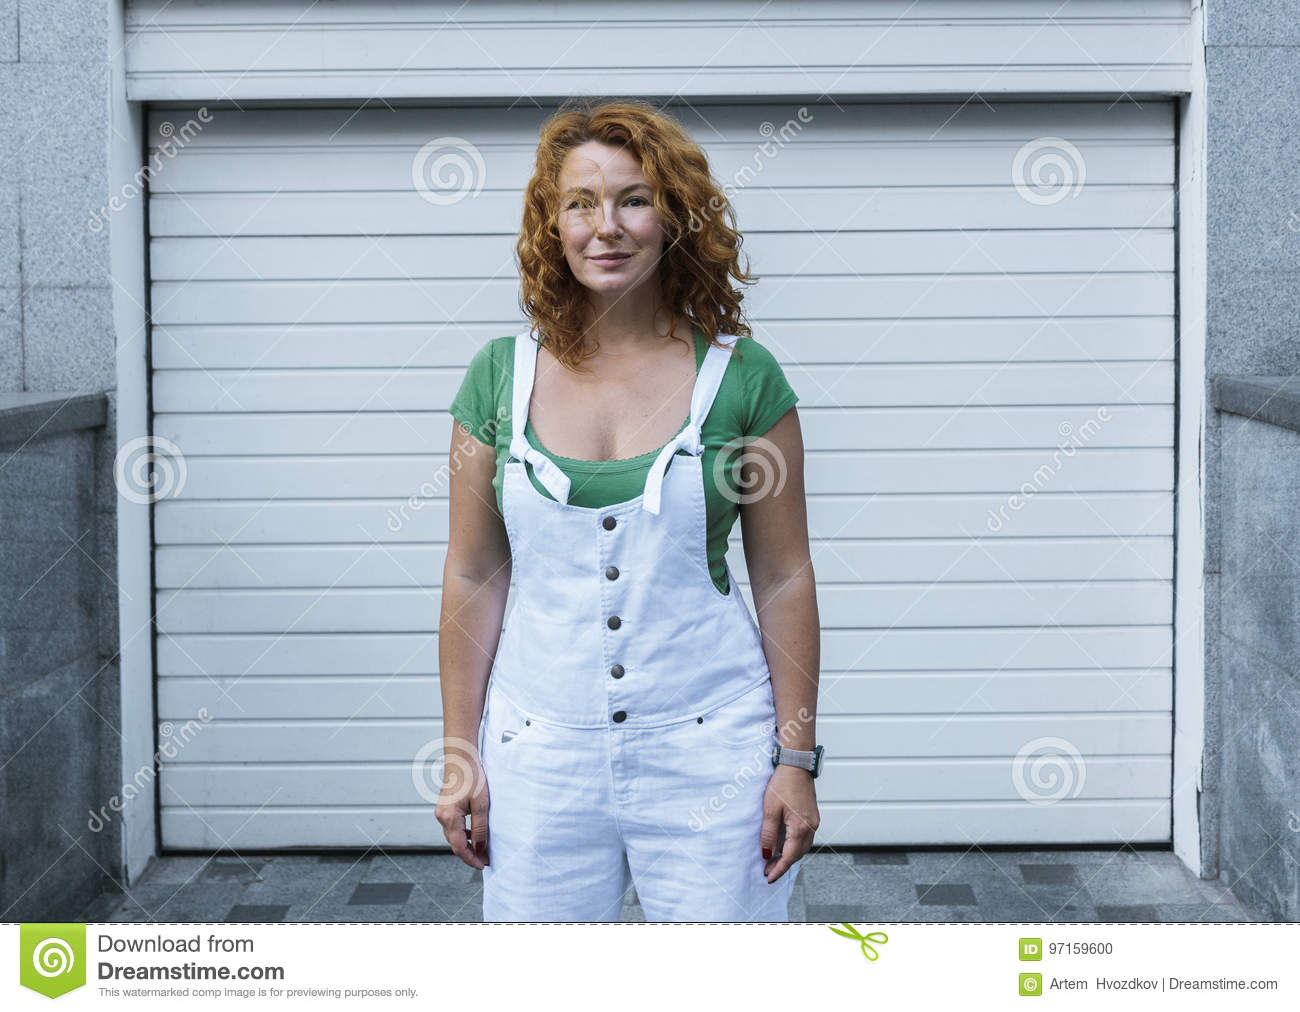 Woman standing on minimalism white pattern in white overalls. Day, outdoor